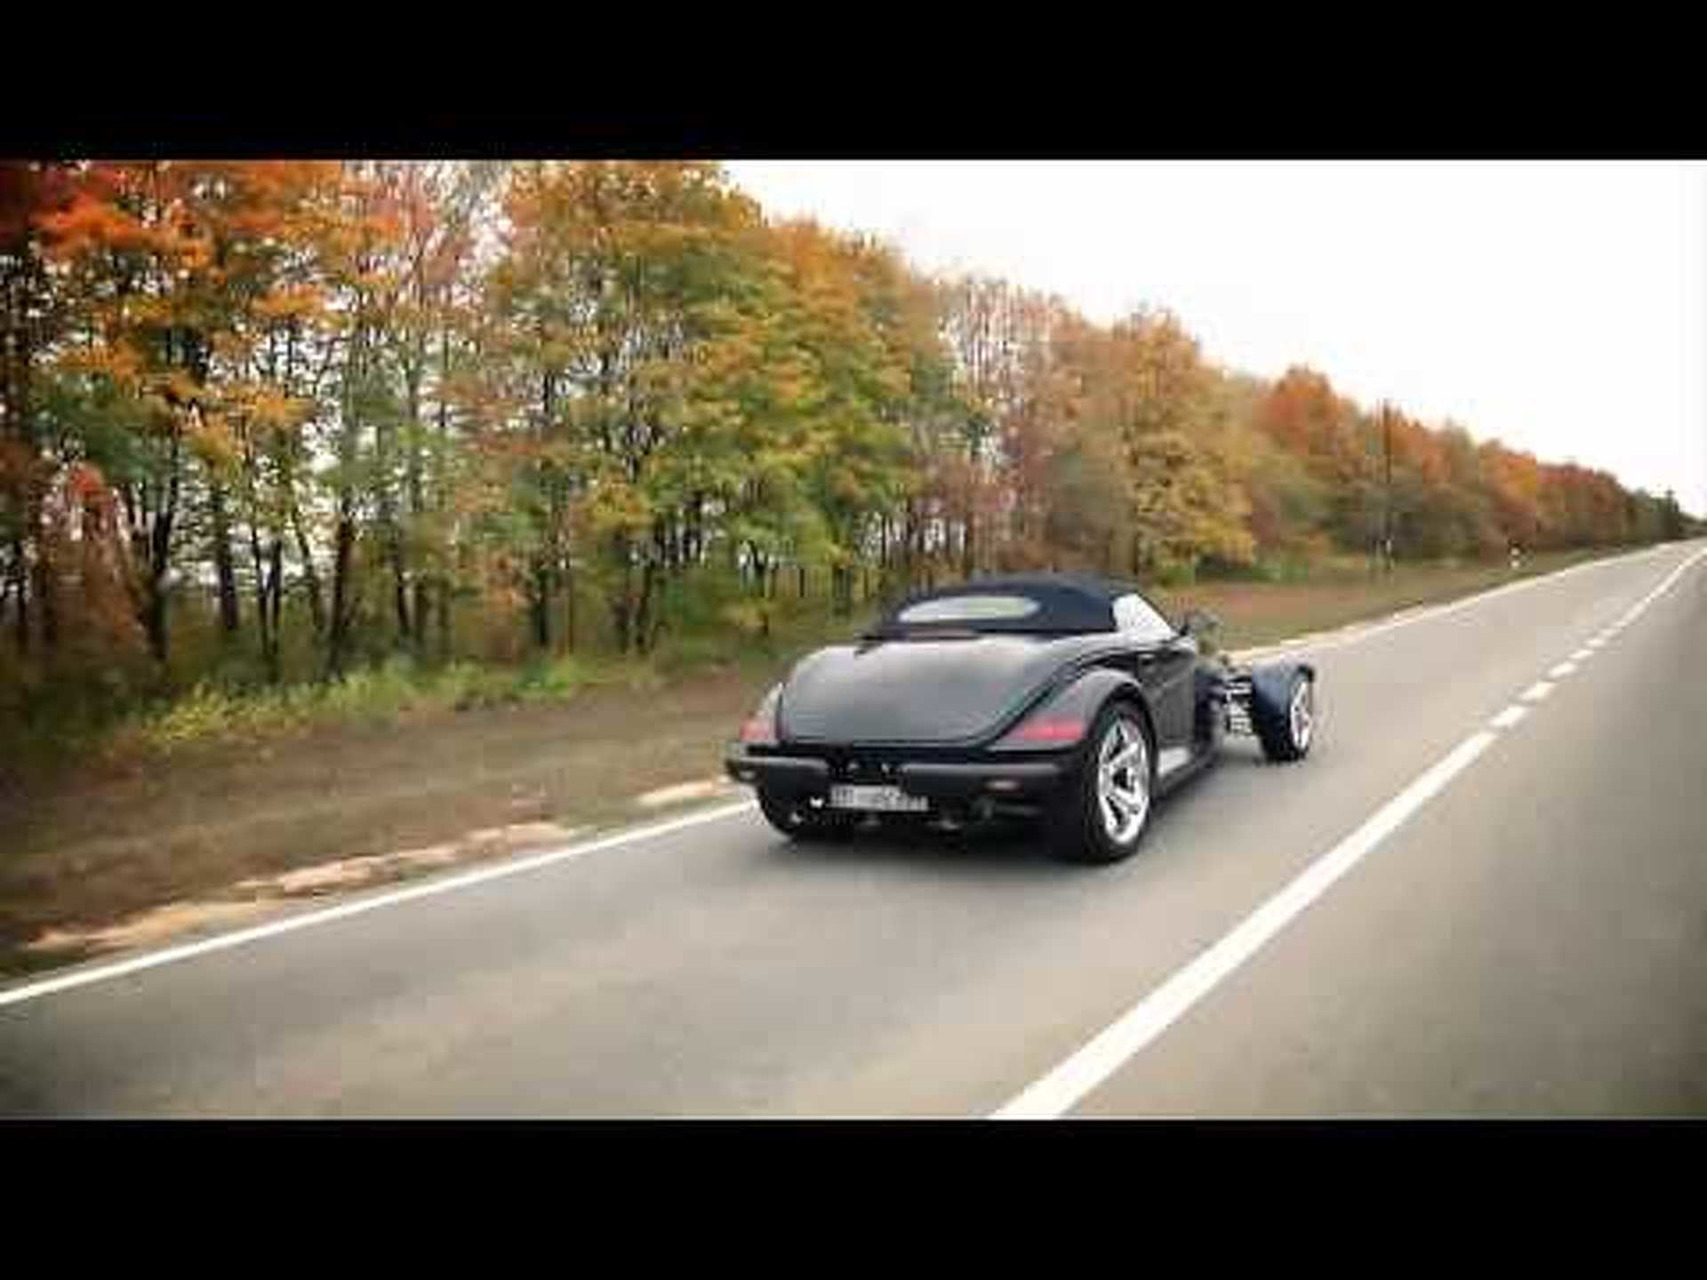 Plymouth Chrysler Prowler hot rod (атопрограмма